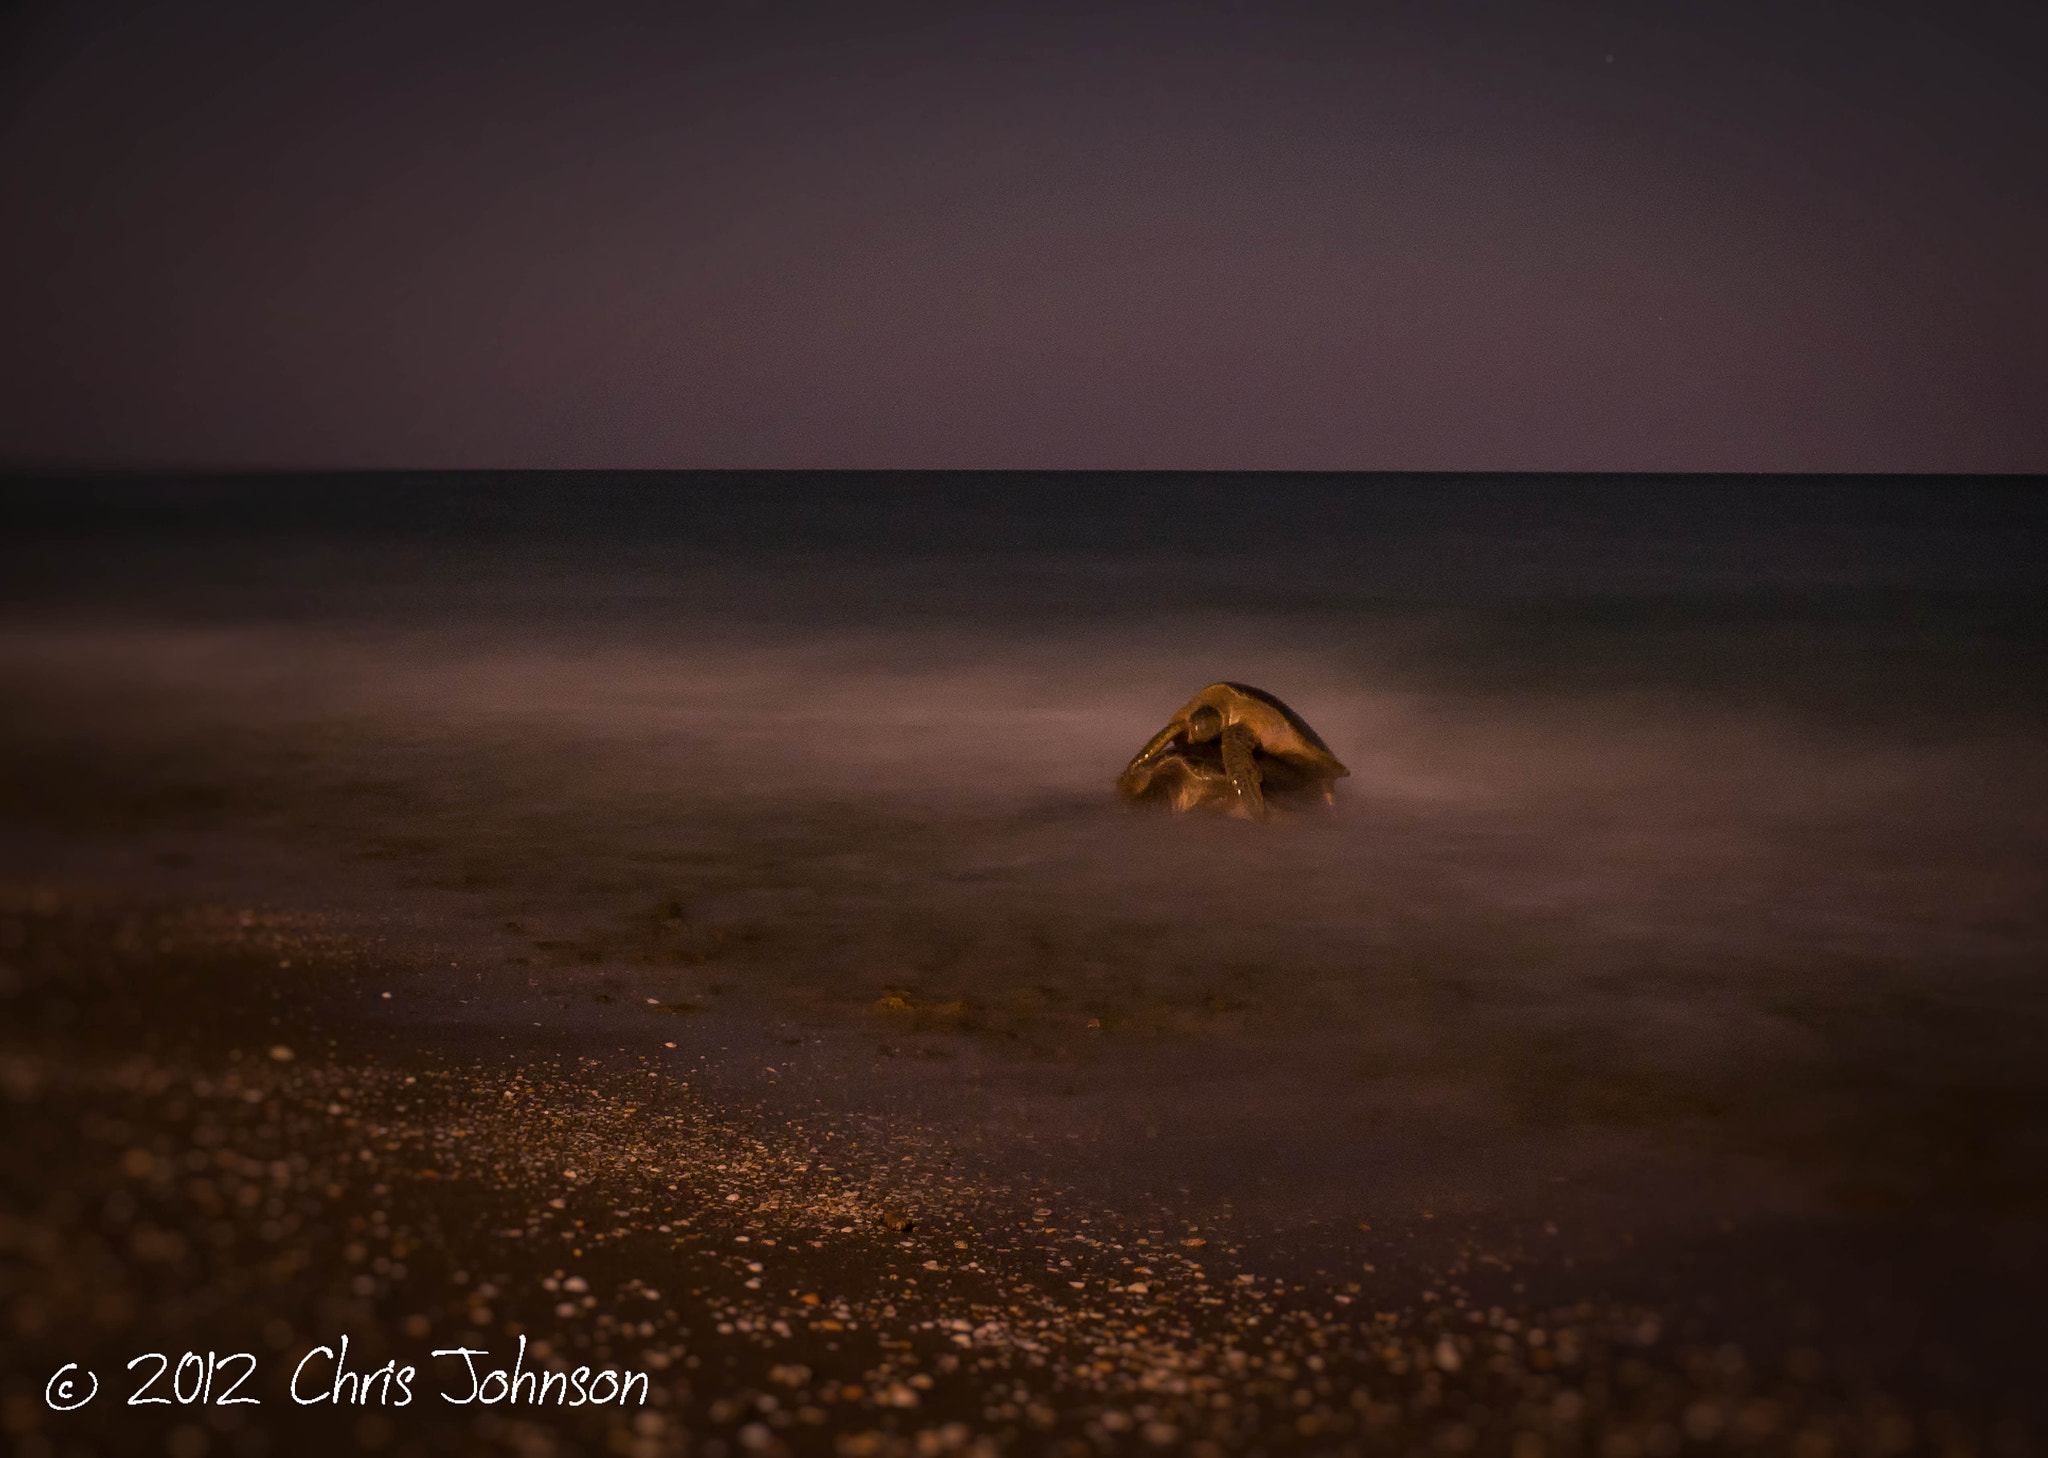 Photograph Under the cover of night by Chris Johnson on 500px